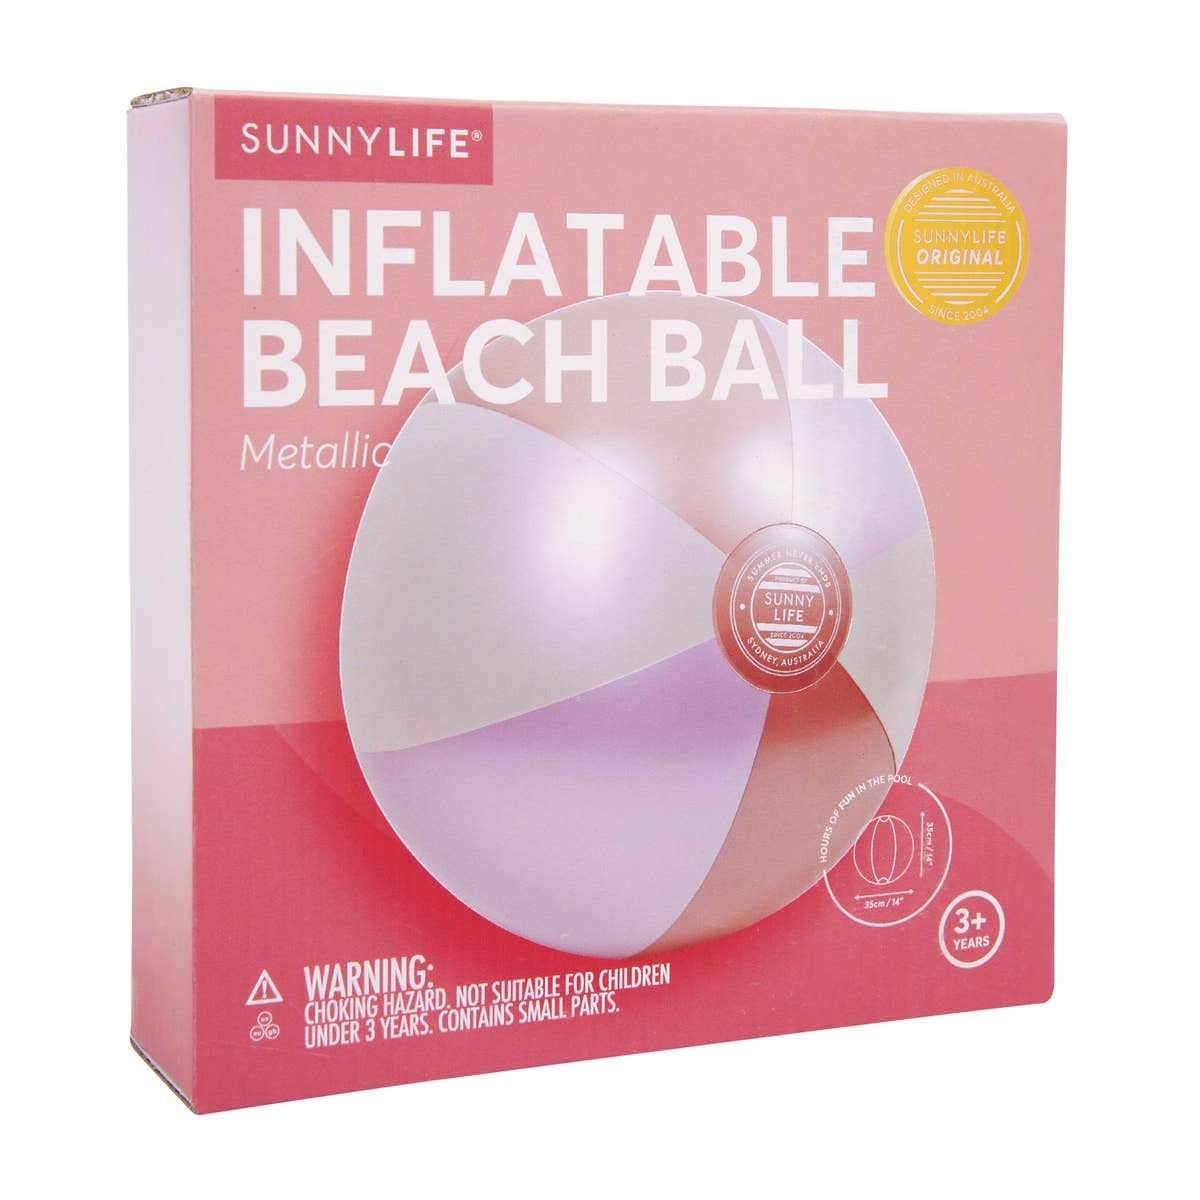 Sunnylife Inflatable Beach Ball Metallic